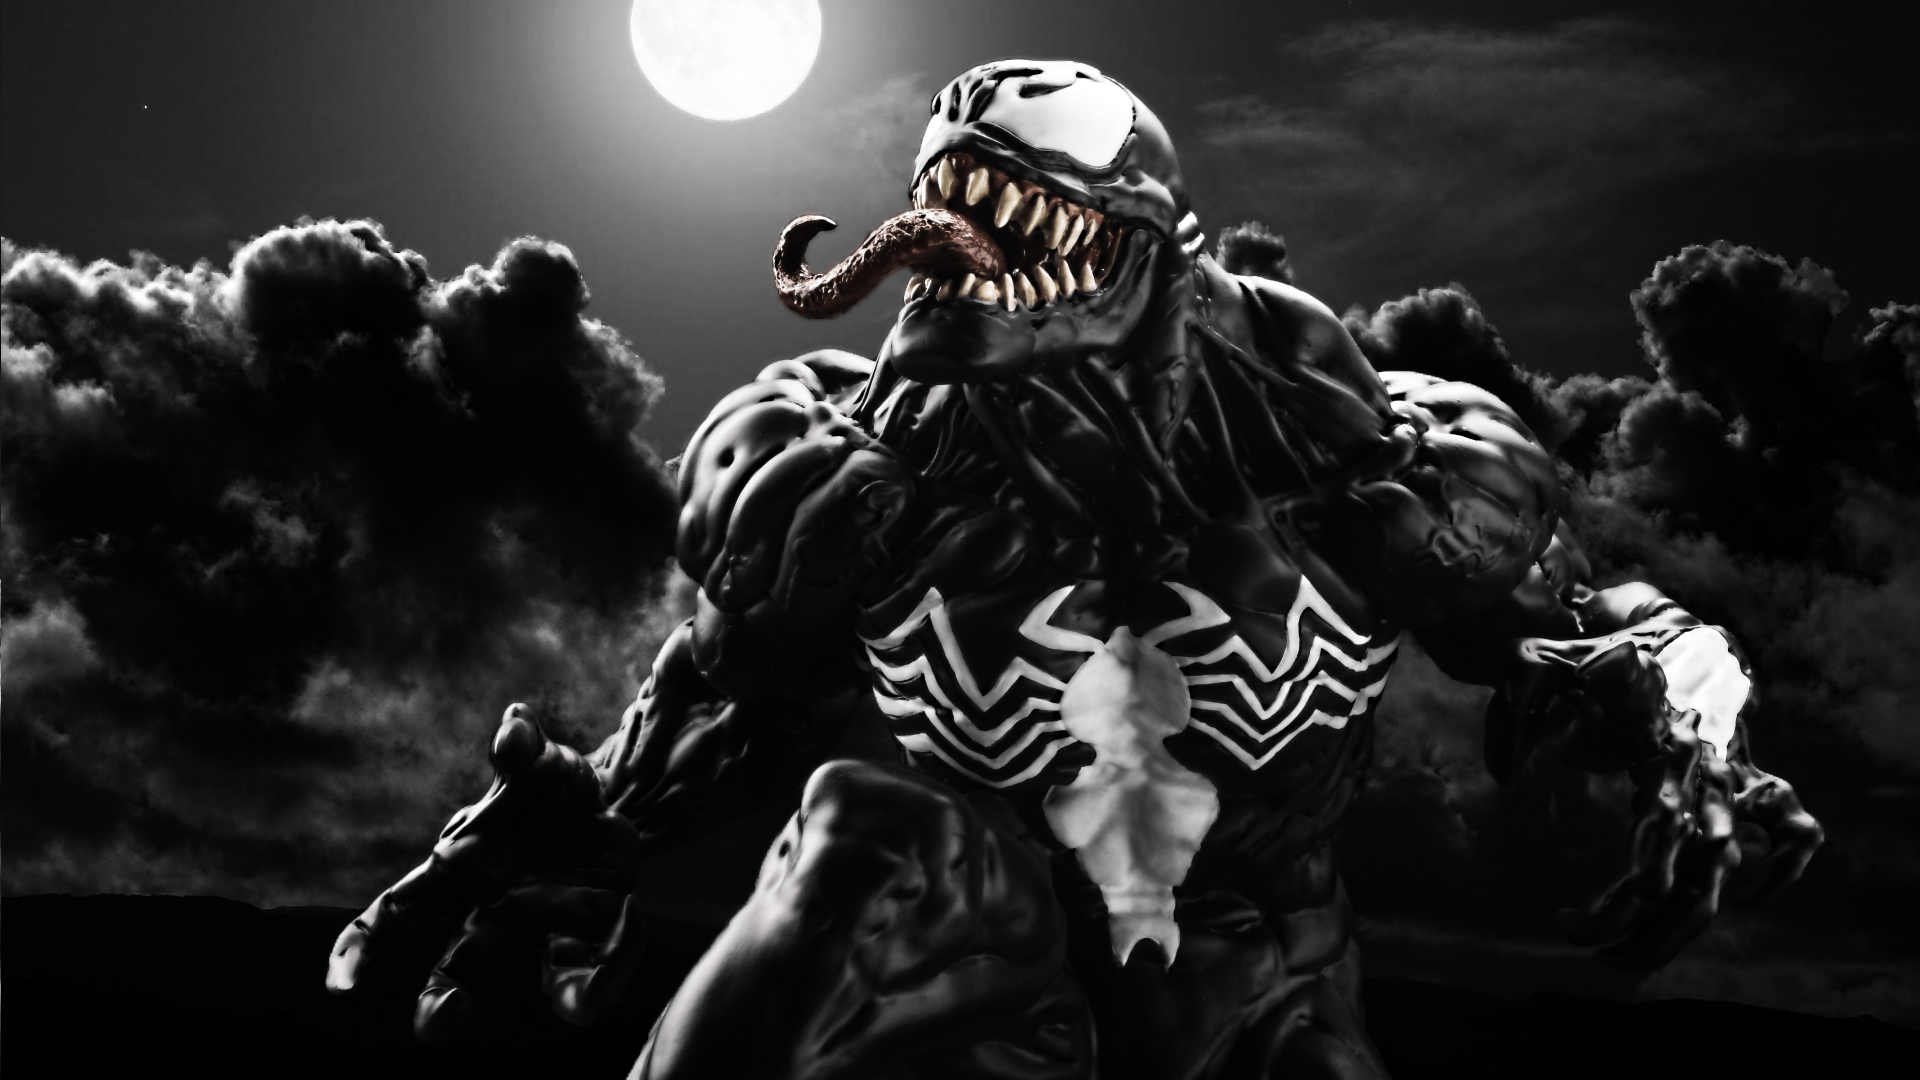 Venom Wallpaper Hd D Wallpapers Pinterest Venom D Wallpaper